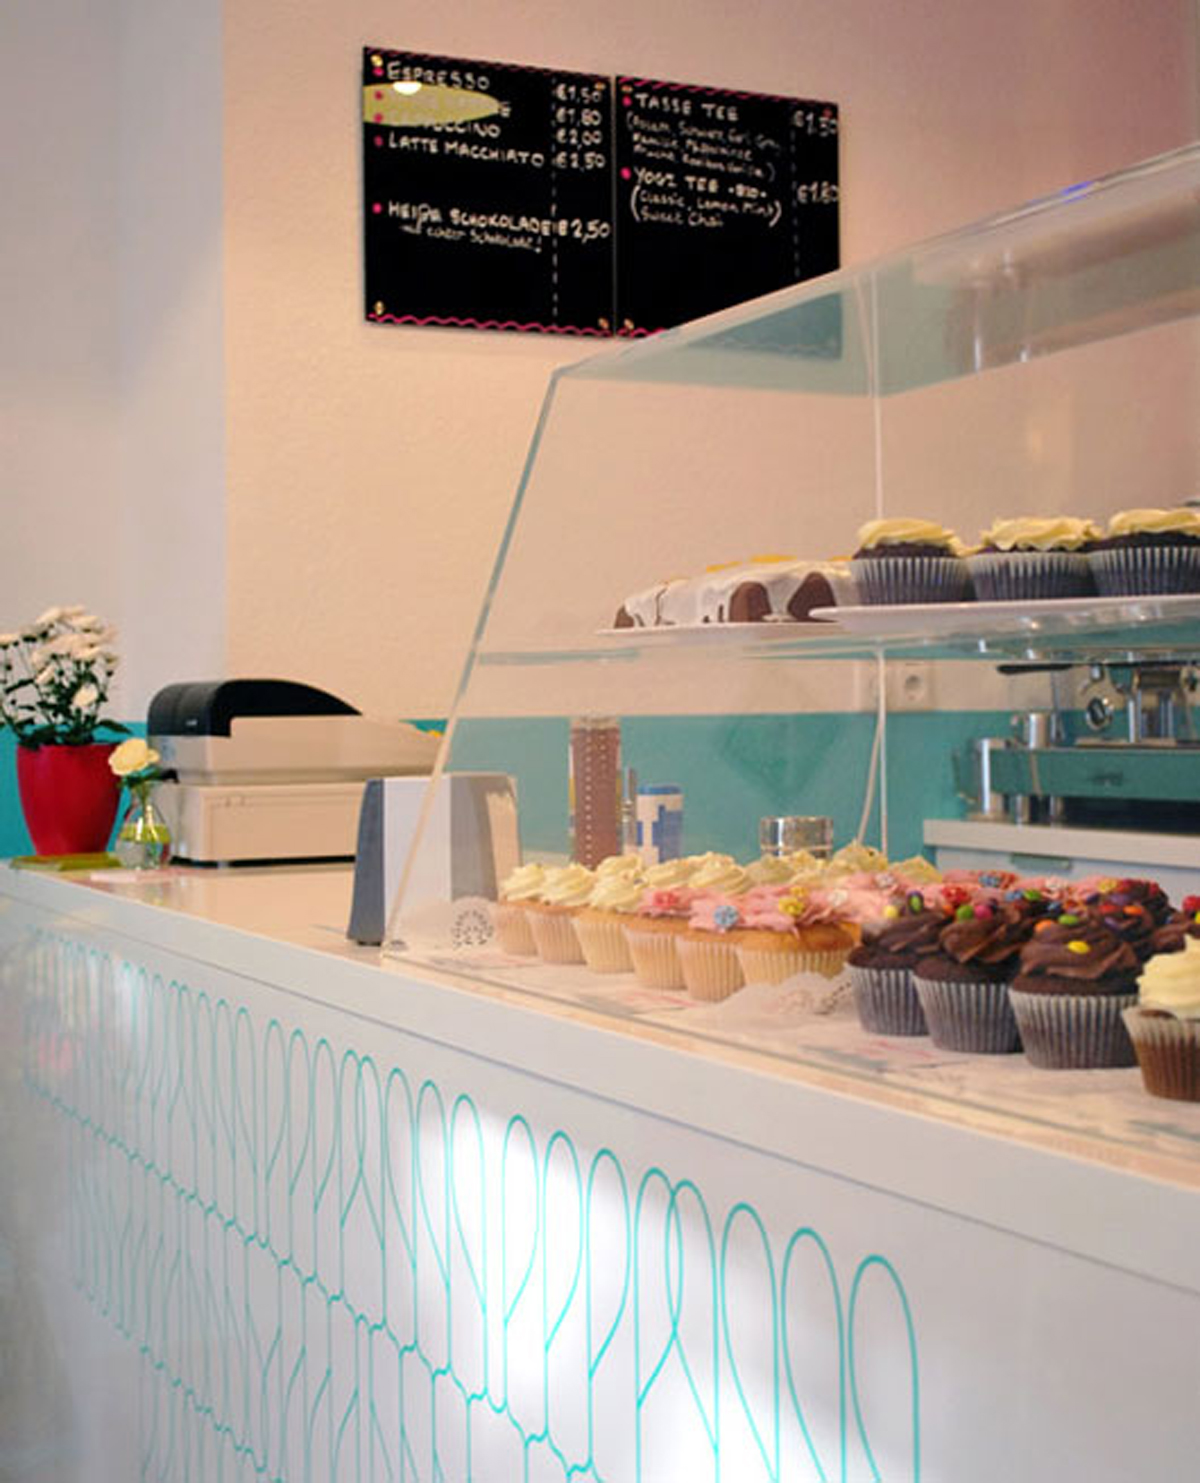 Clean and clear cake shop ideas for Shop ideas design